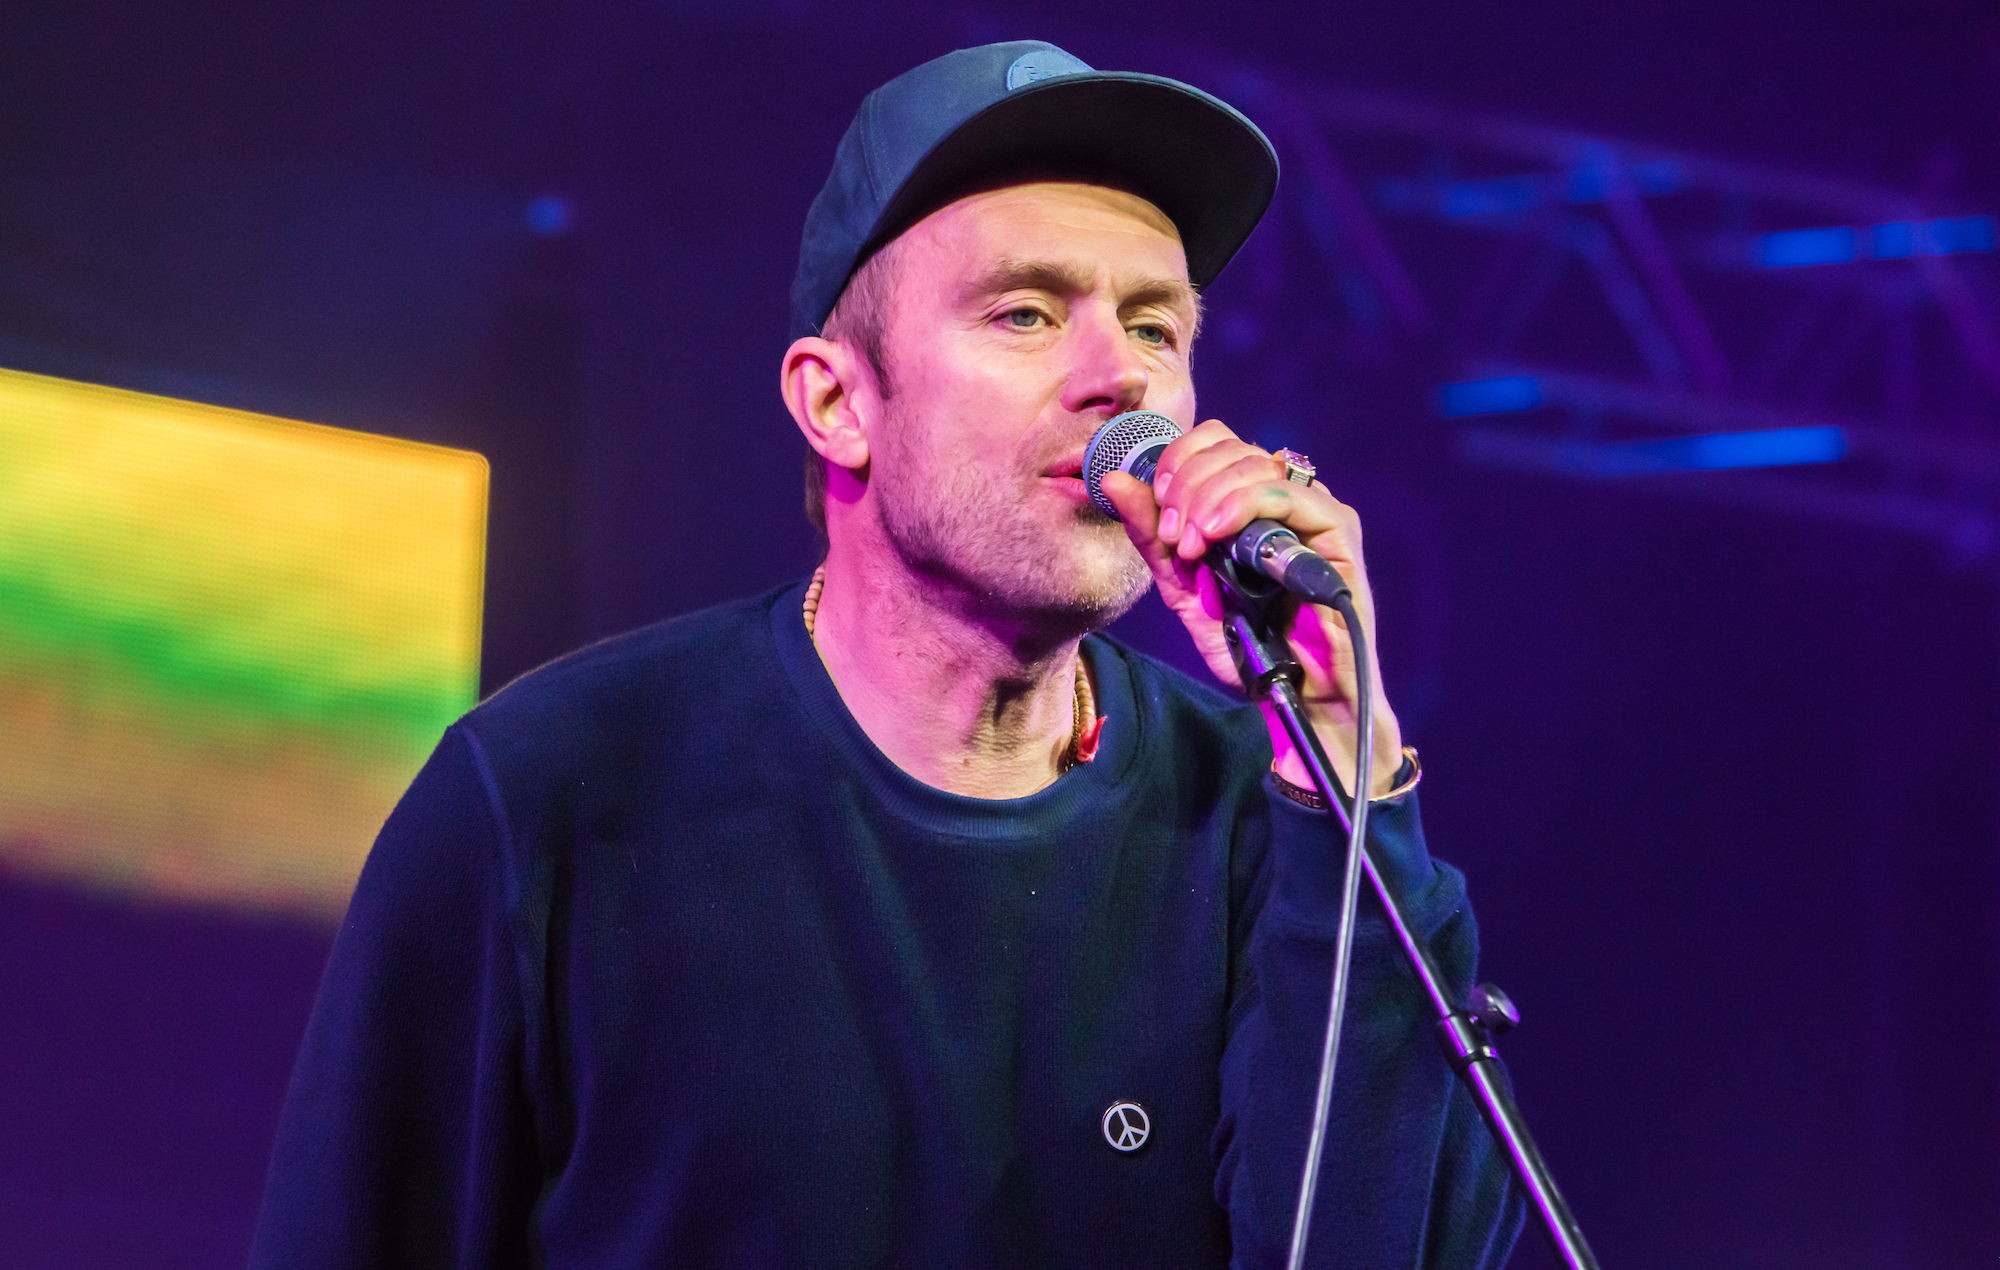 """Damon Albarn says Britain is """"emotionally messed up"""": """"Our mental health is not good"""""""